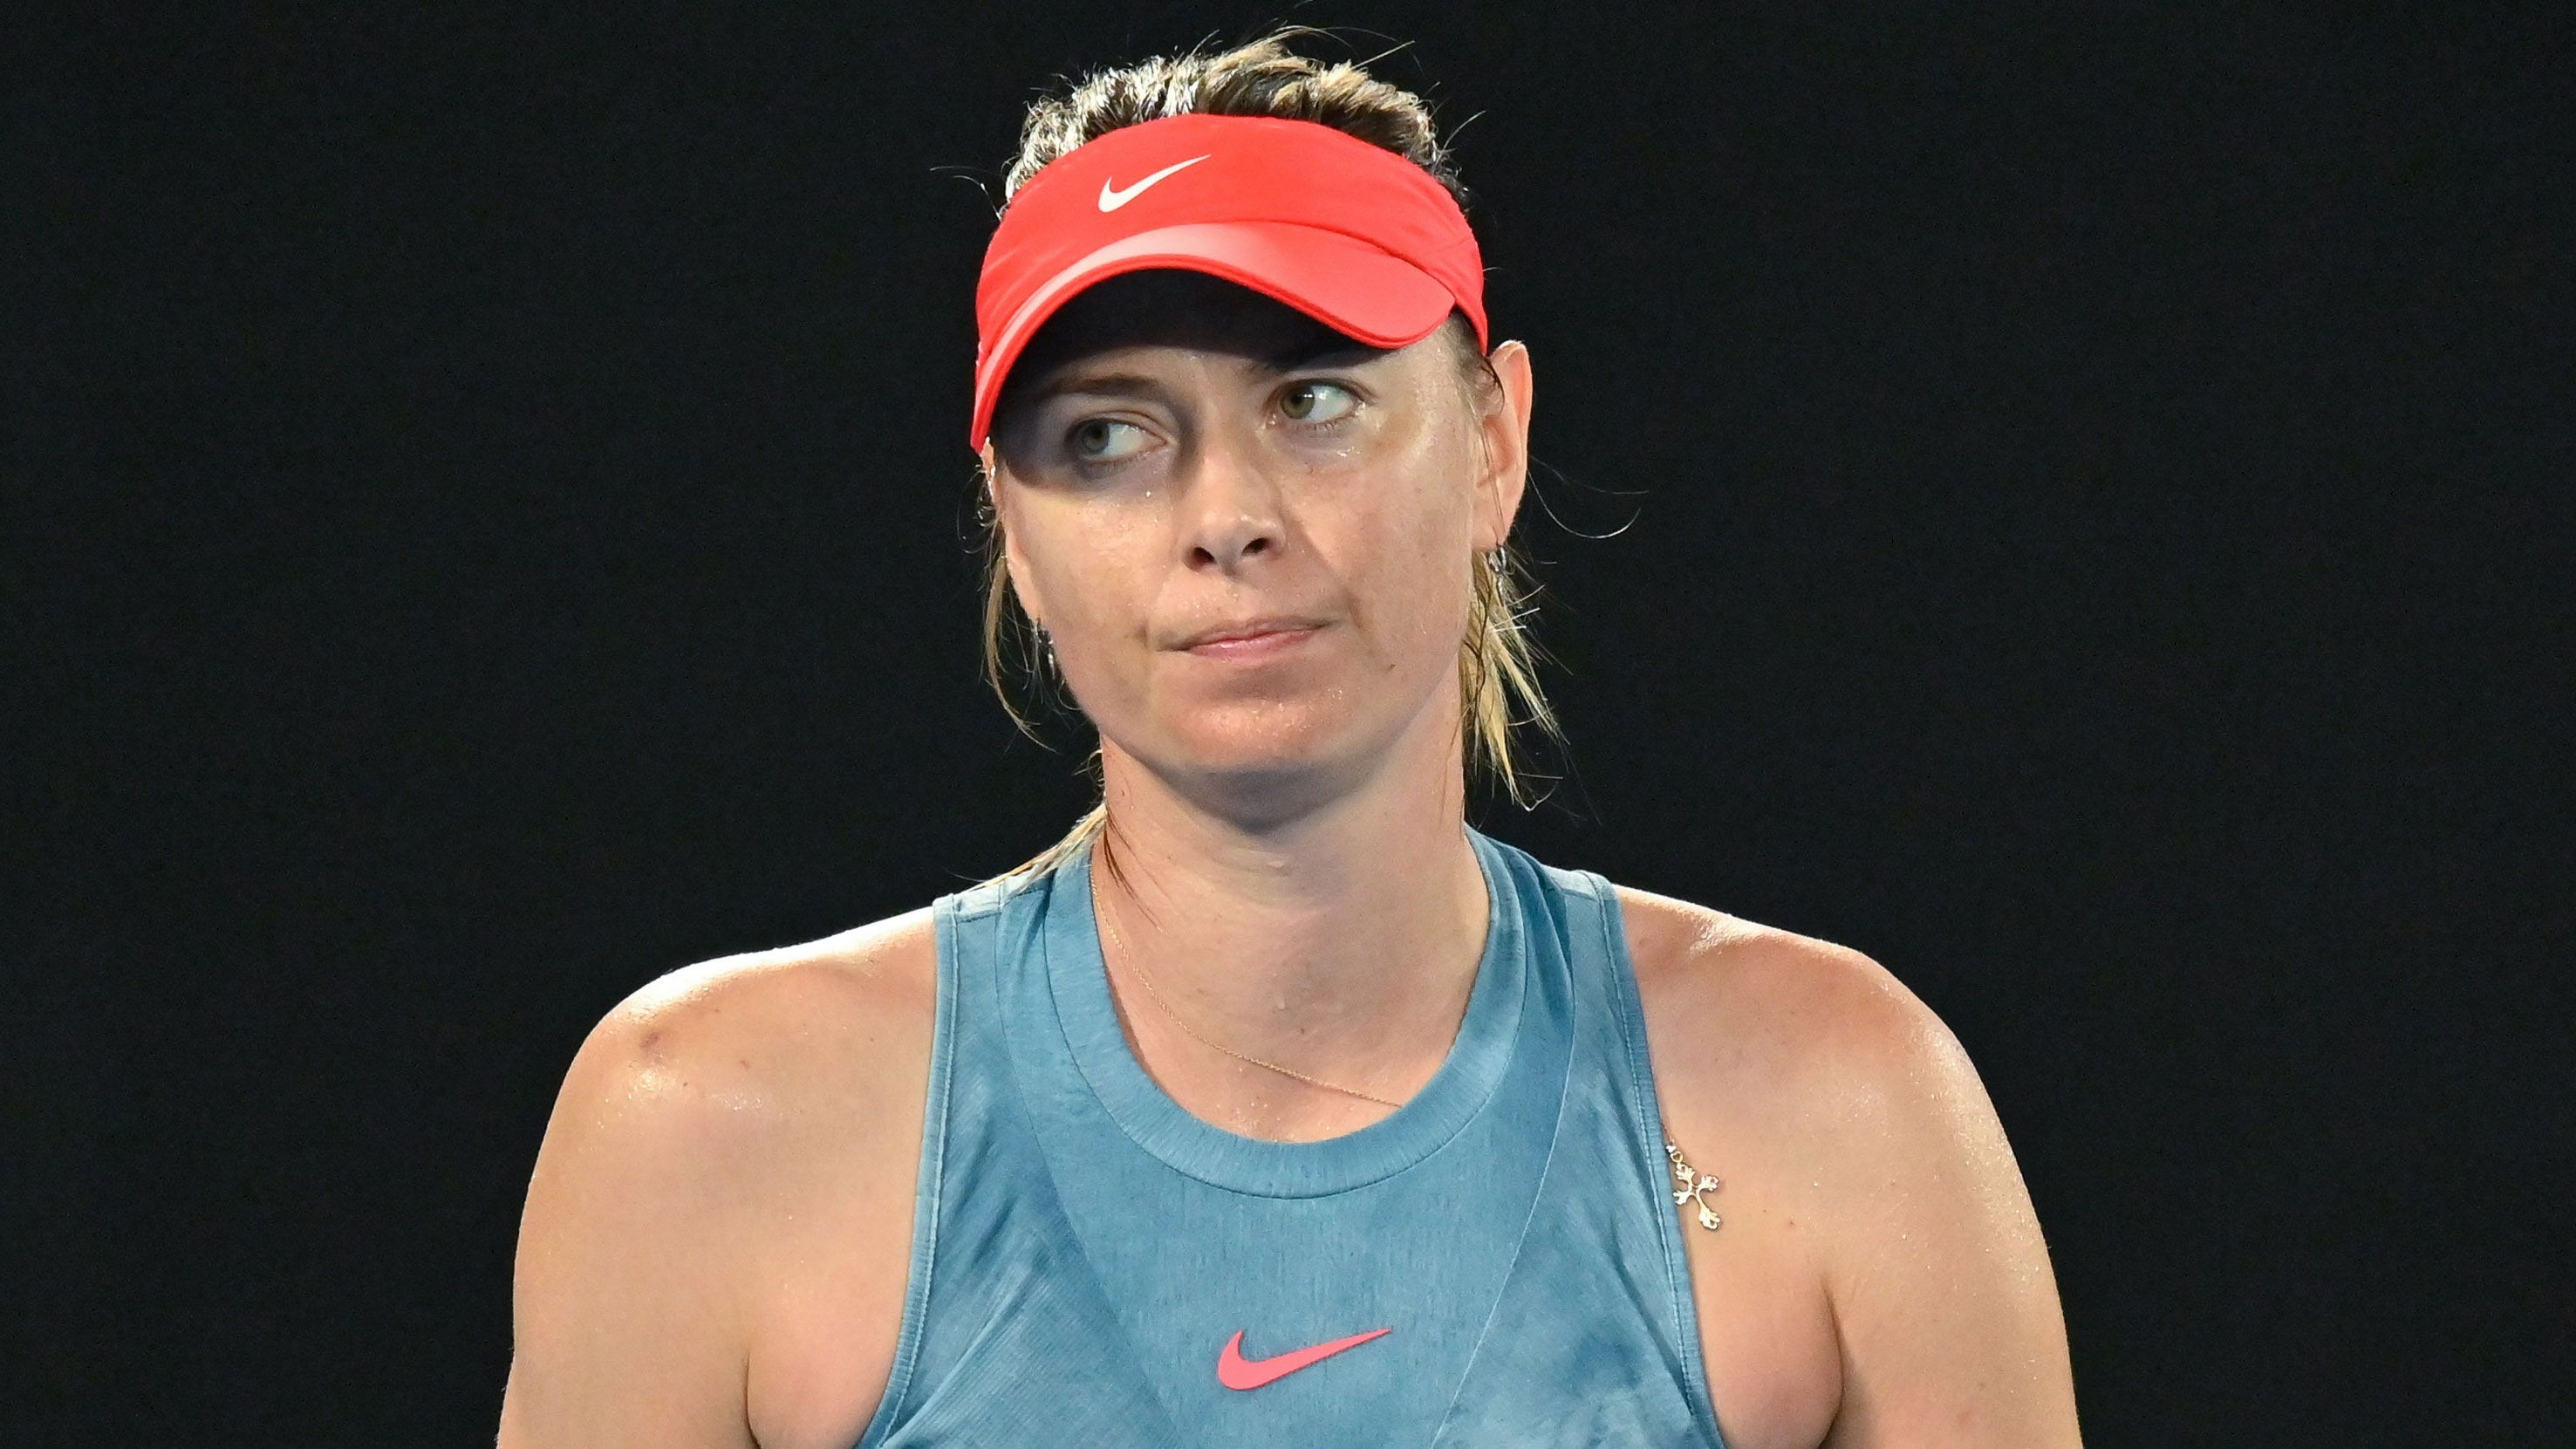 Maria Sharapova fumes after being asked about long bathroom break